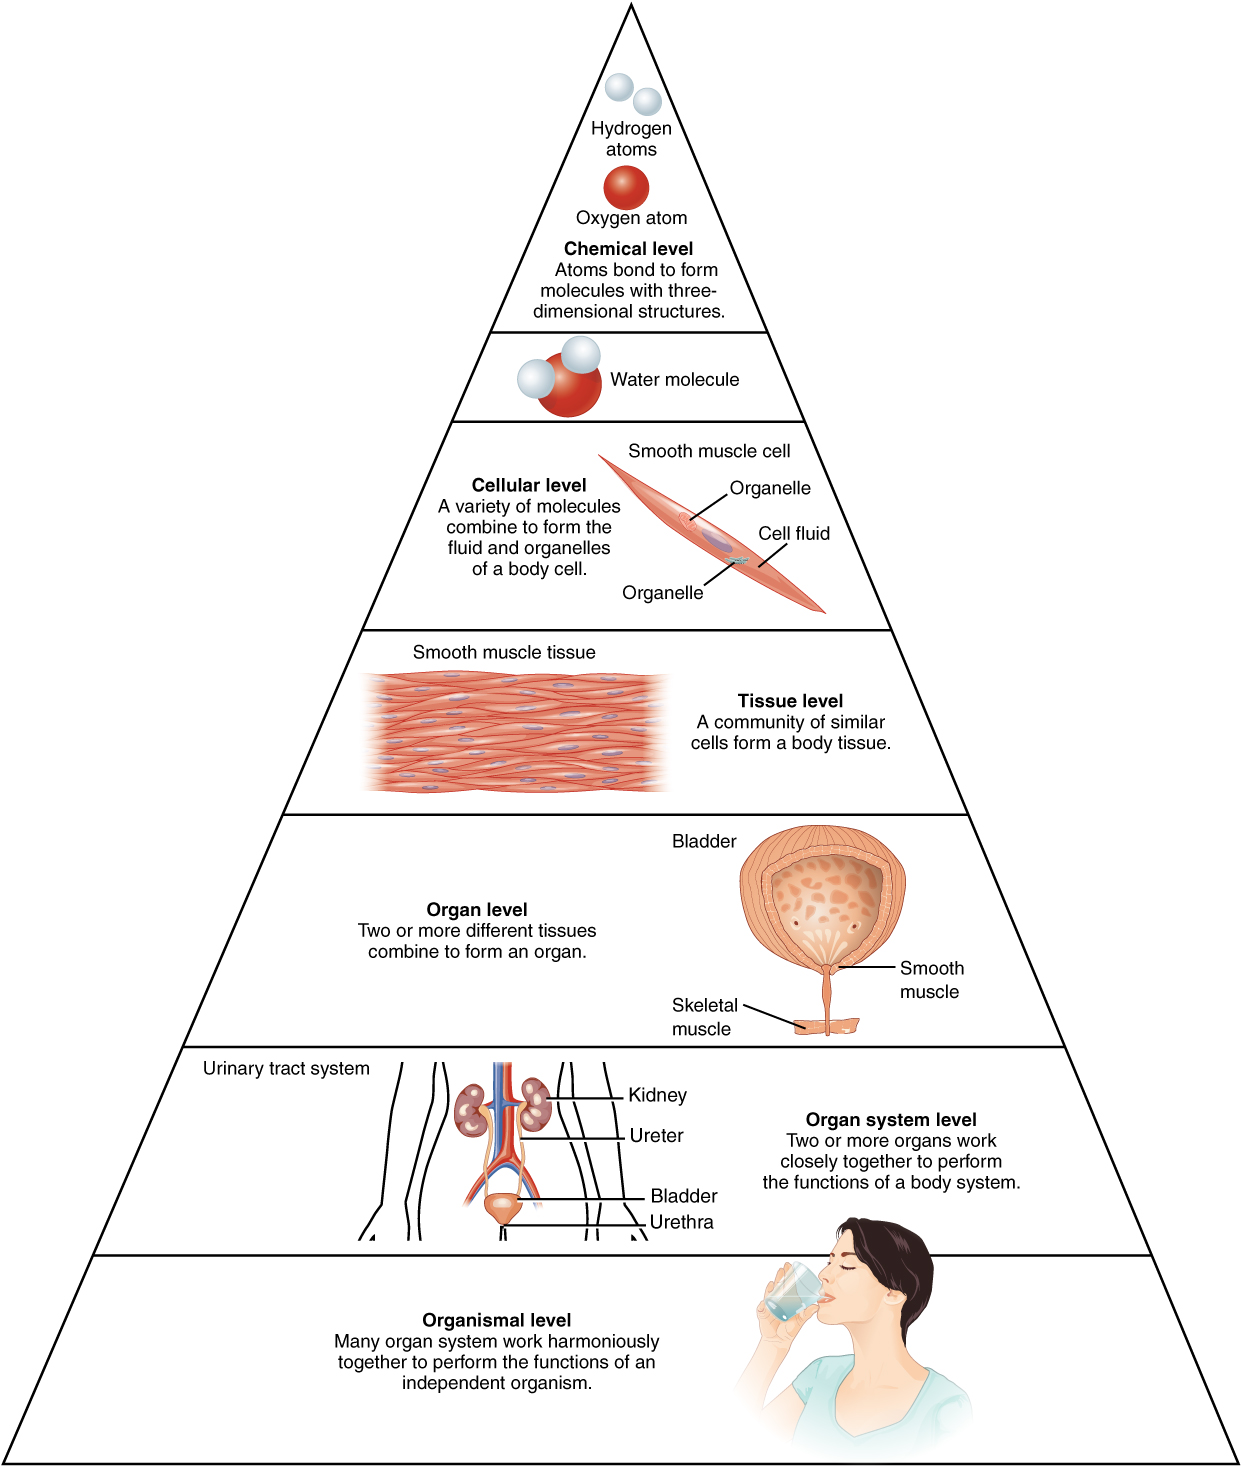 Worksheets Levels Of Organization Worksheet structural organization of the human body anatomy and physiology i this illustration shows biological as a pyramid chemical level is at apex